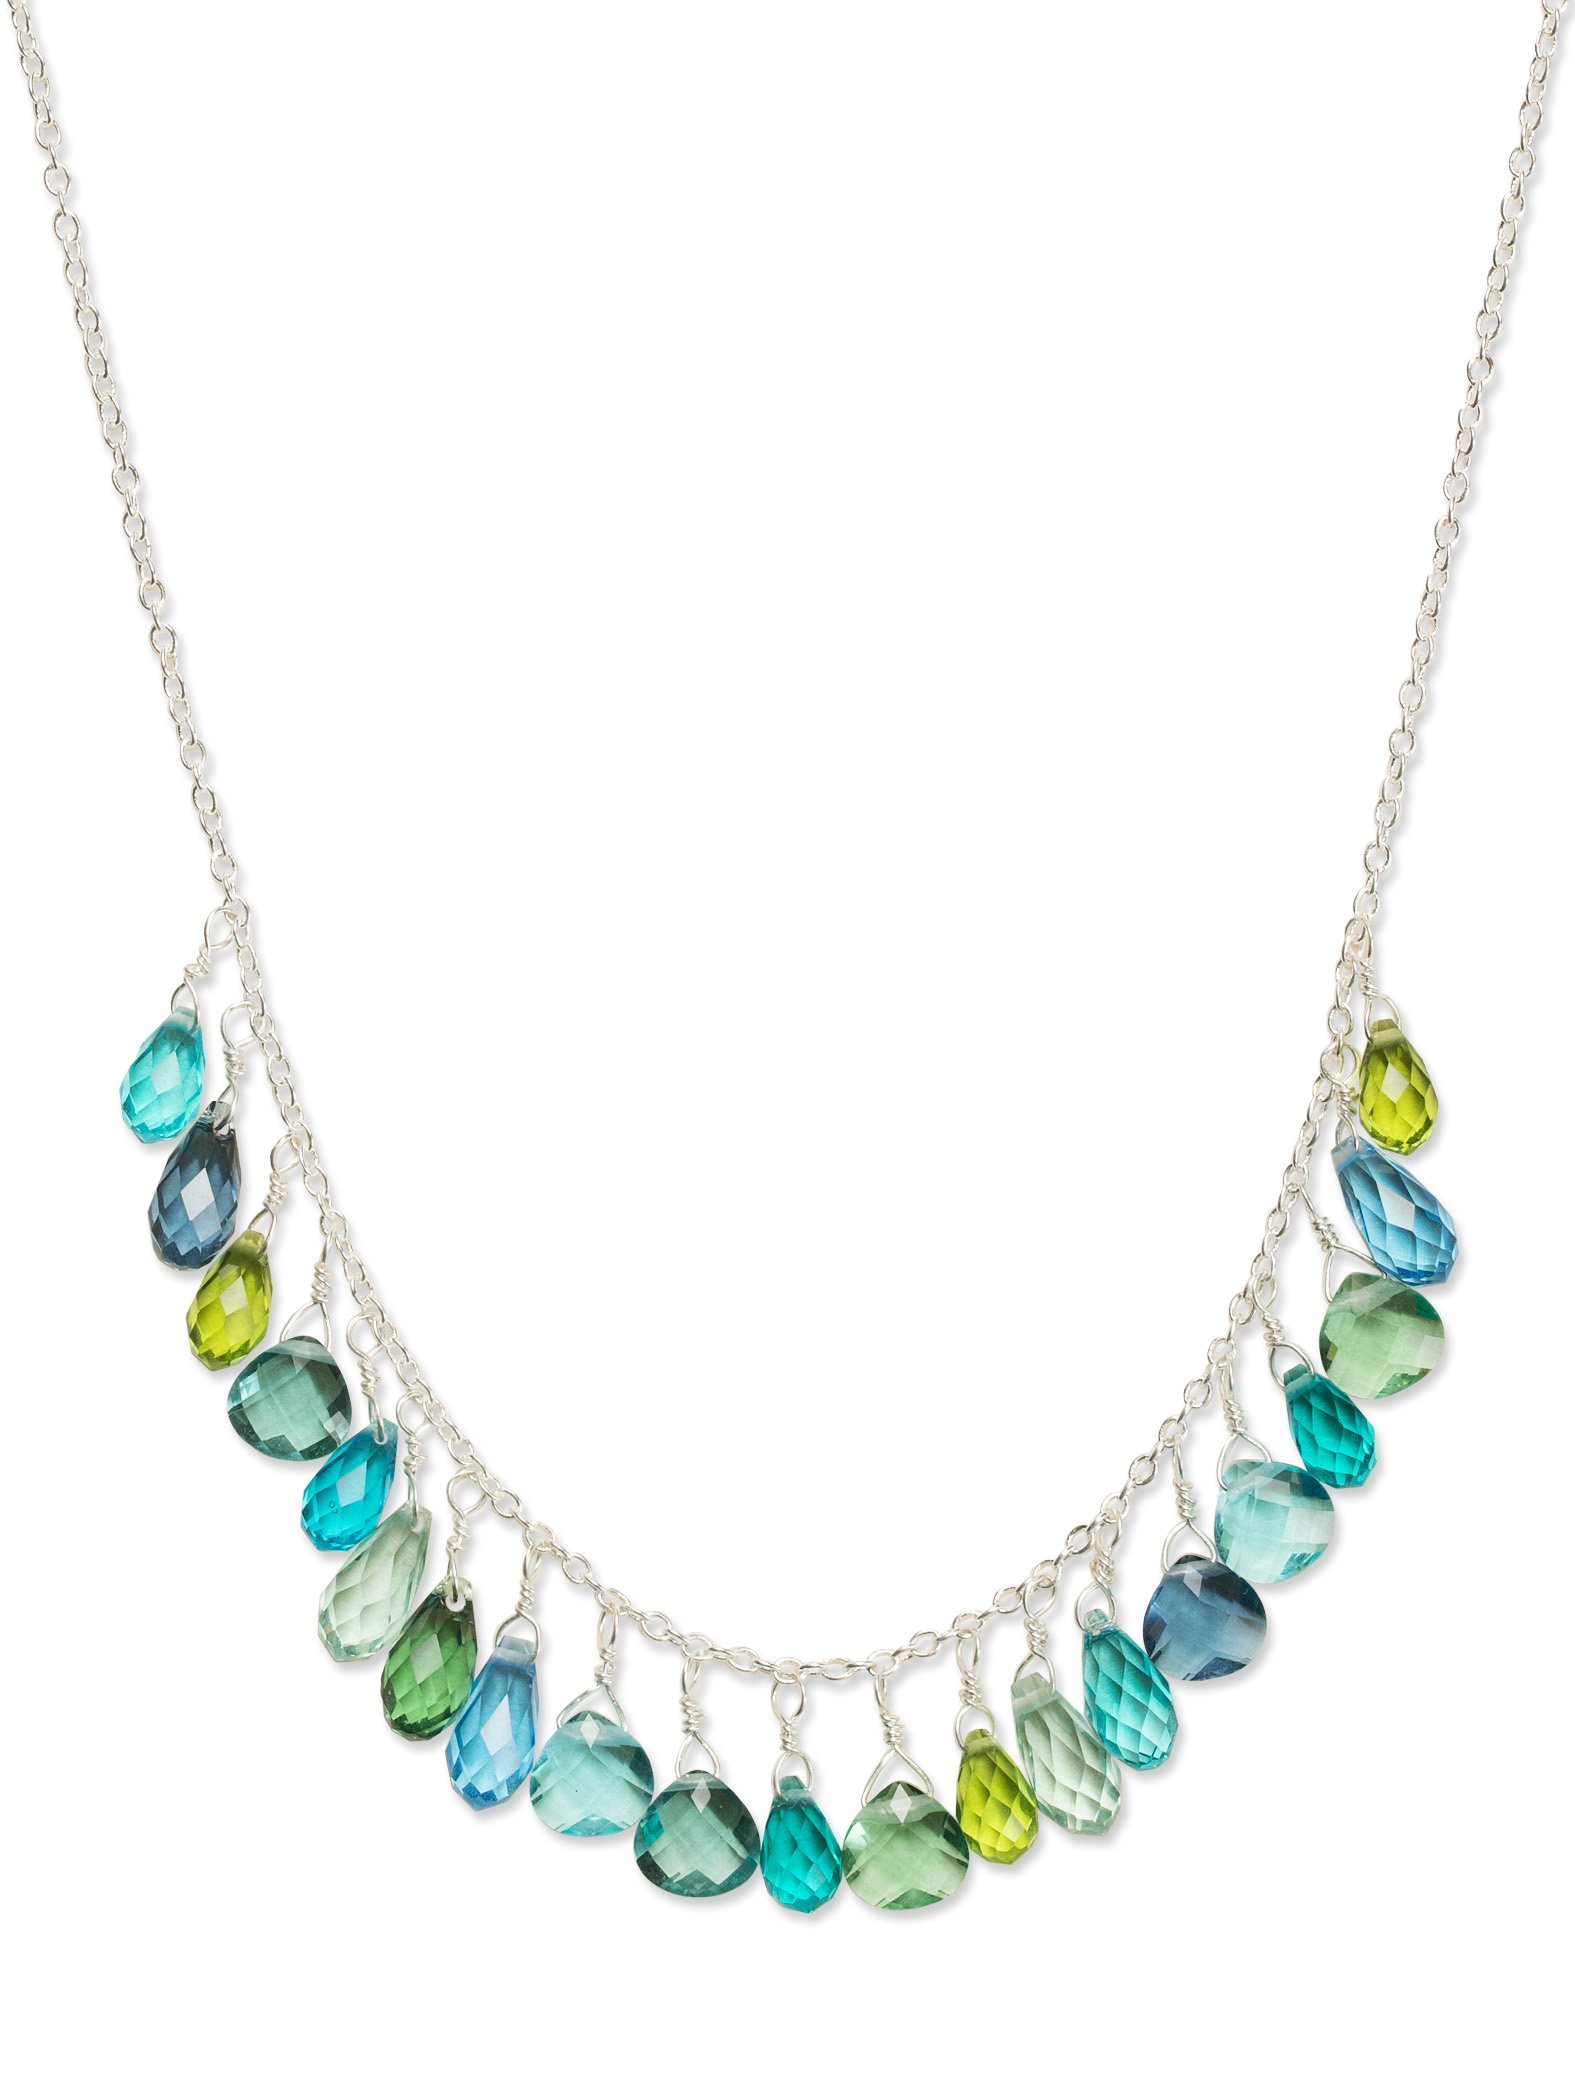 Holly Yashi Lorelei Necklace, Made in California (Aqua)